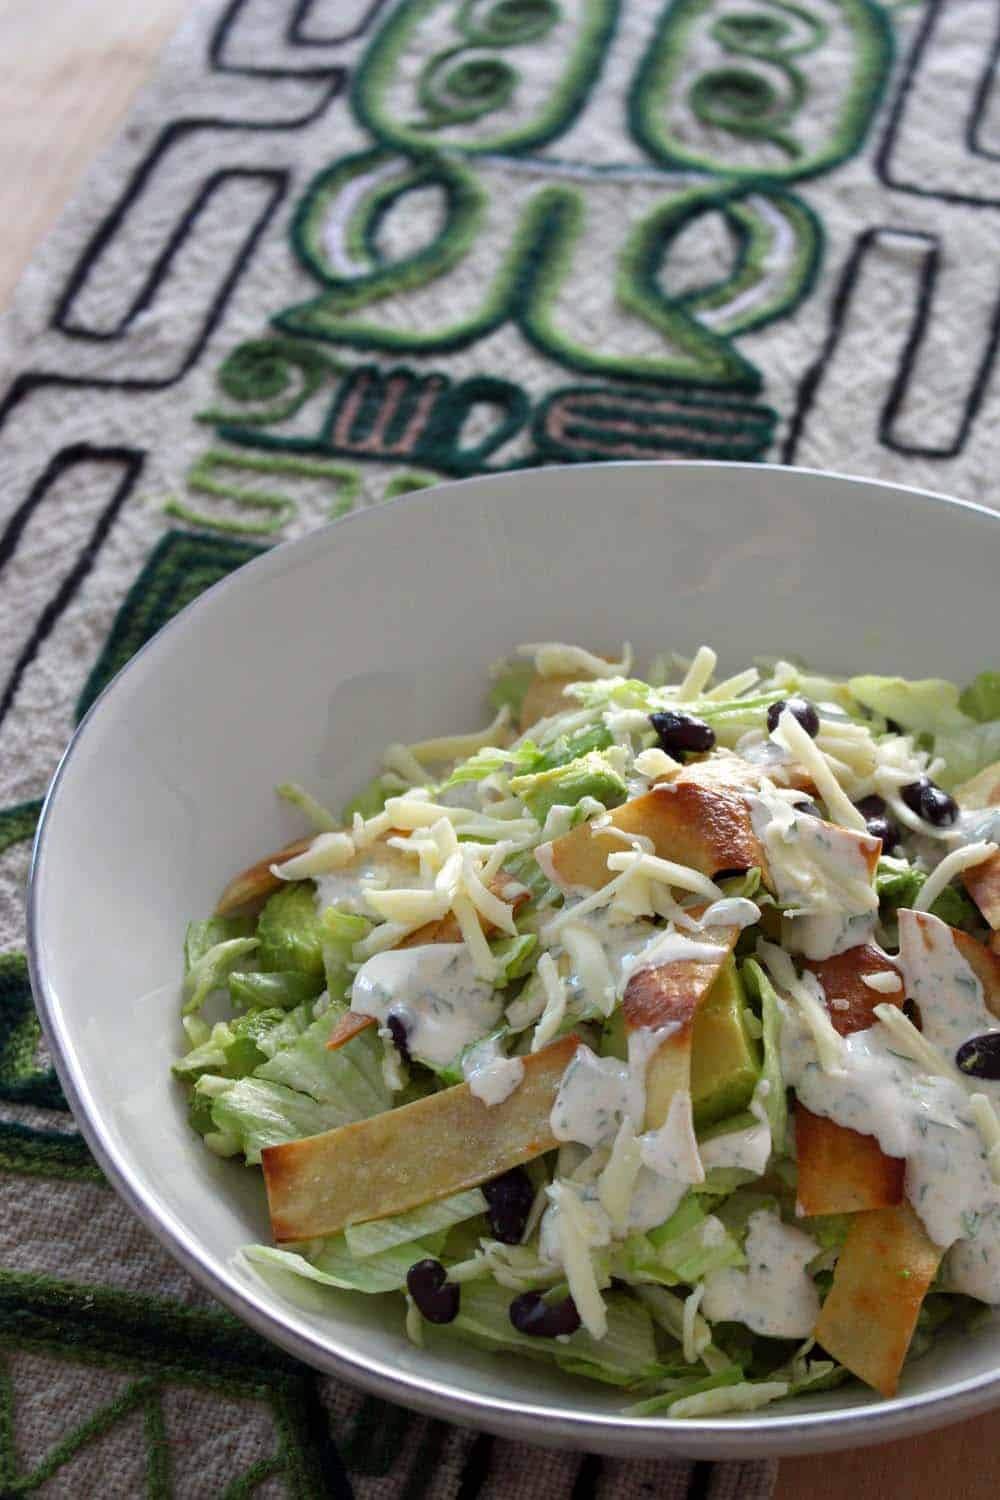 Taco salad in foreground, on geometric patterned cloth, with squeezed limes in background.